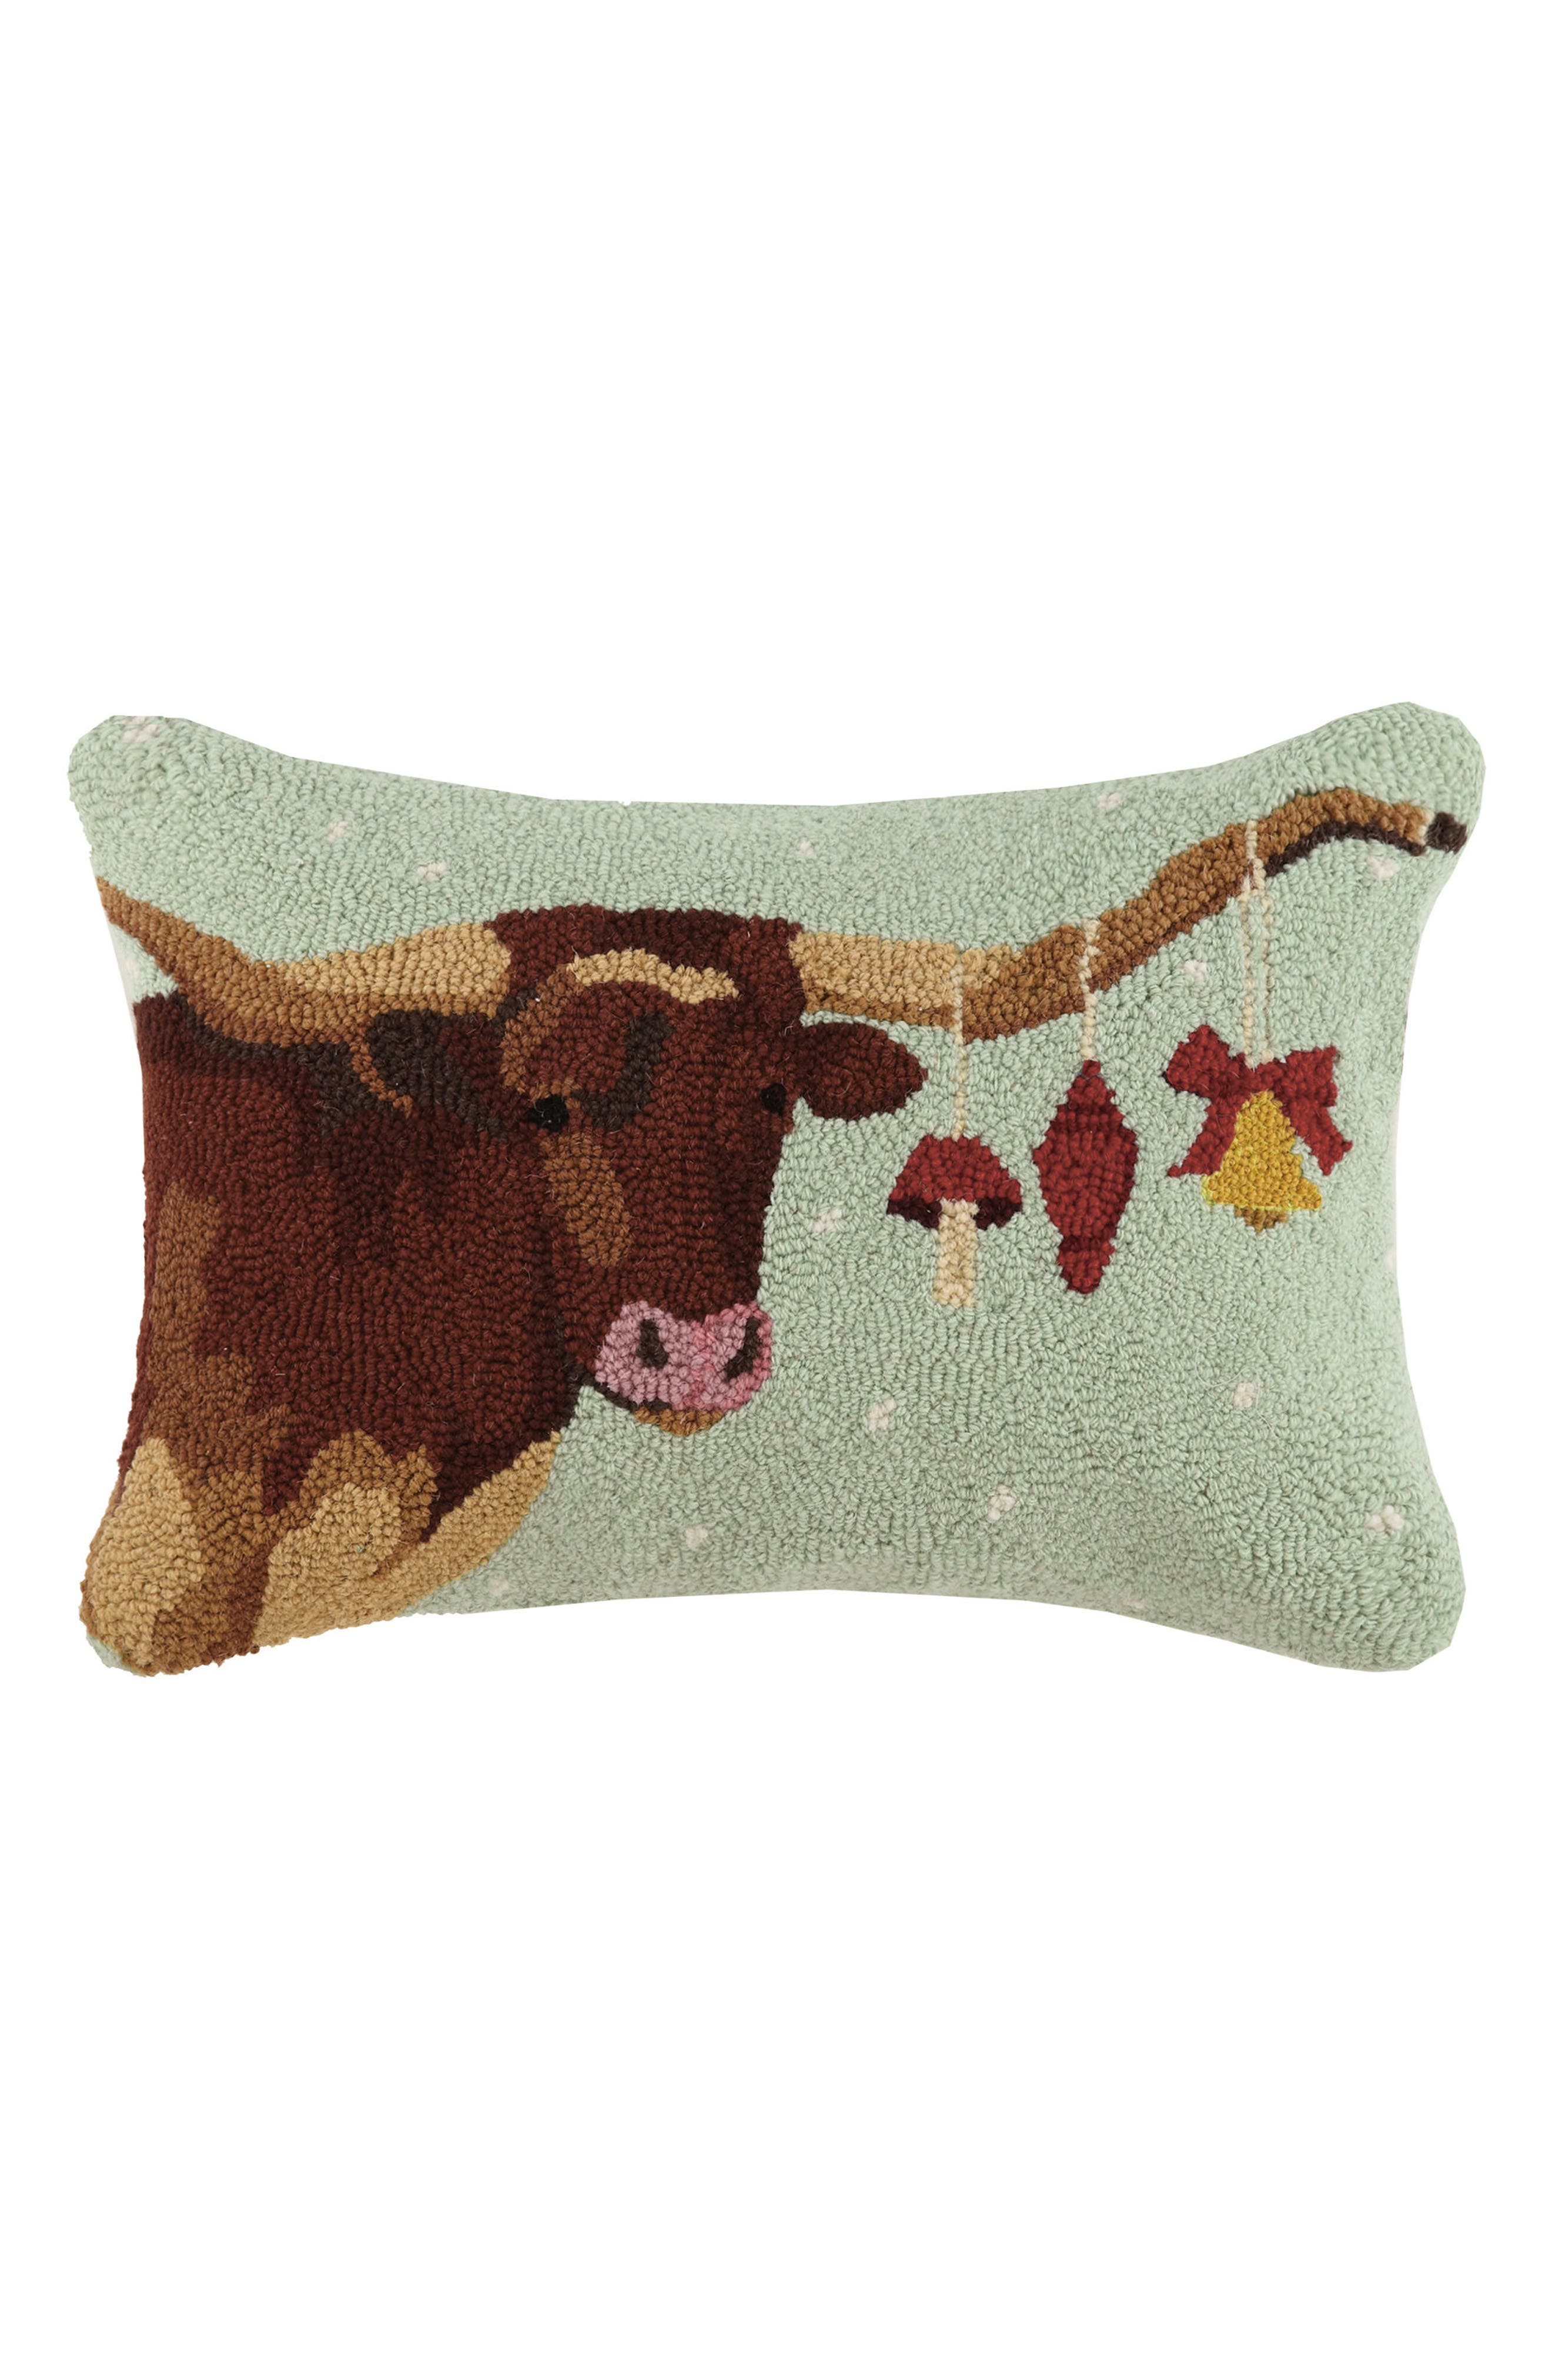 Alternate Image 1 Selected - Peking Handicraft Longhorn with Ornaments Hooked Accent Pillow